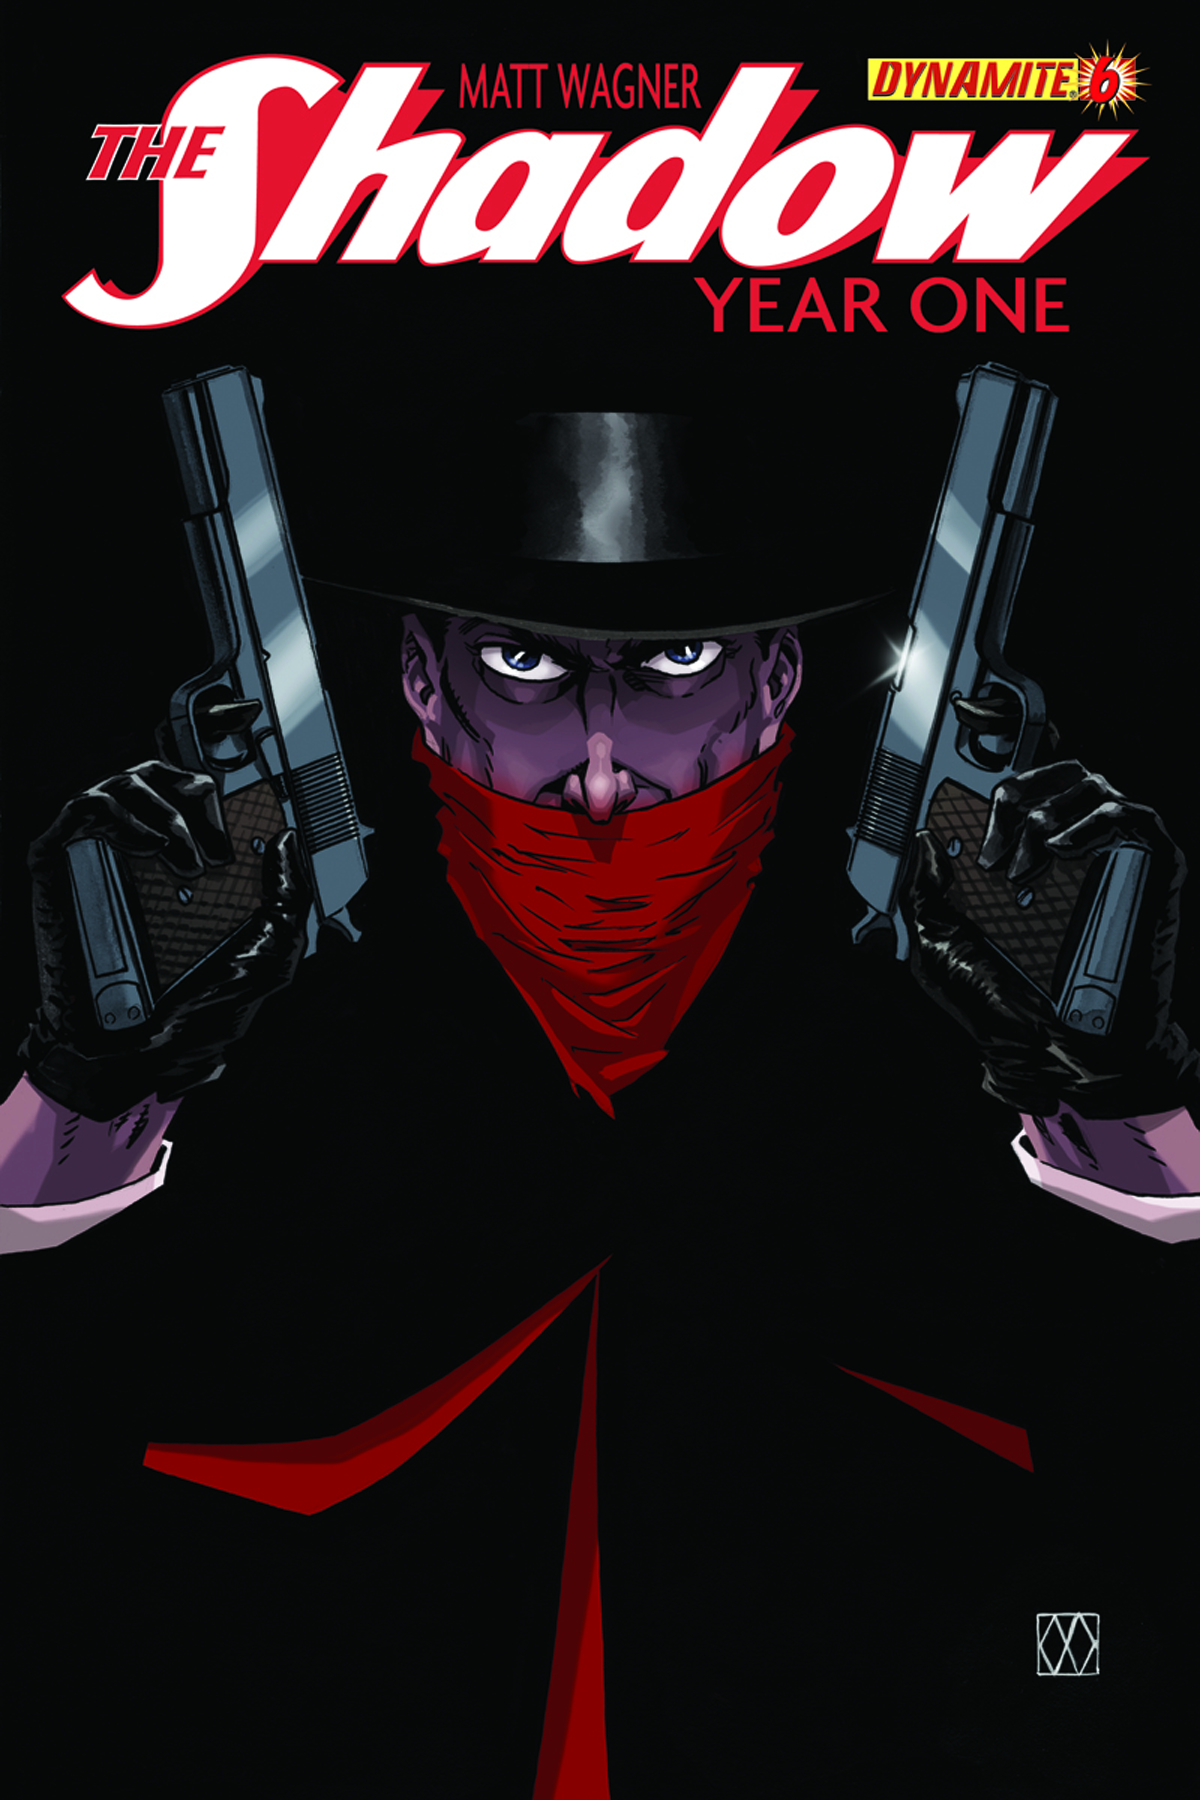 SHADOW YEAR ONE #6 (OF 10) 200 COPY WAGNER HAND DRAWN INCV